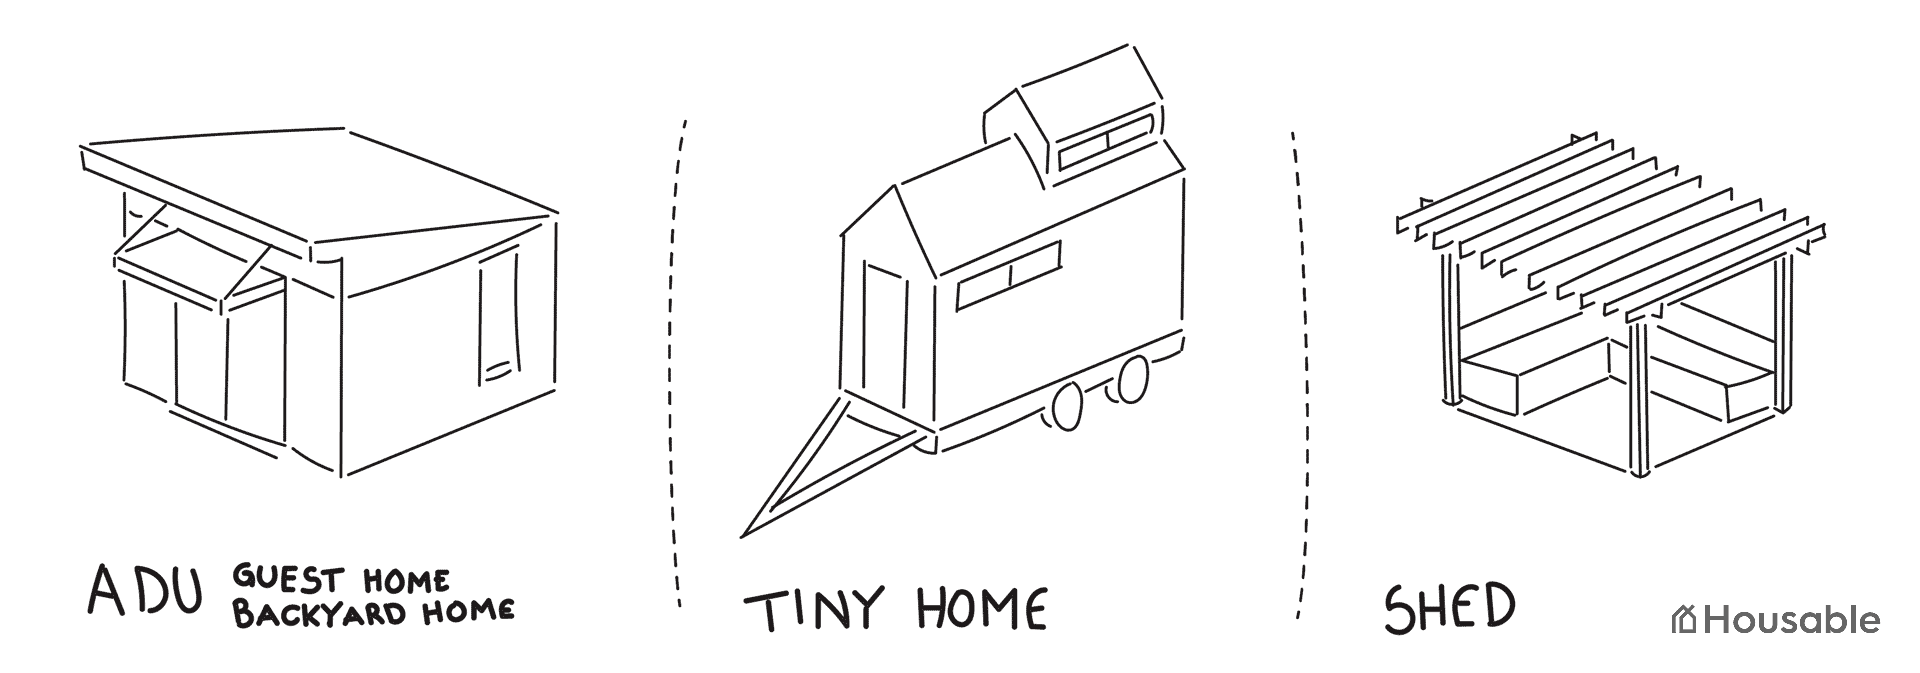 Introductory image showing different types of accessory structures: ADU, Tiny Home, Shed.